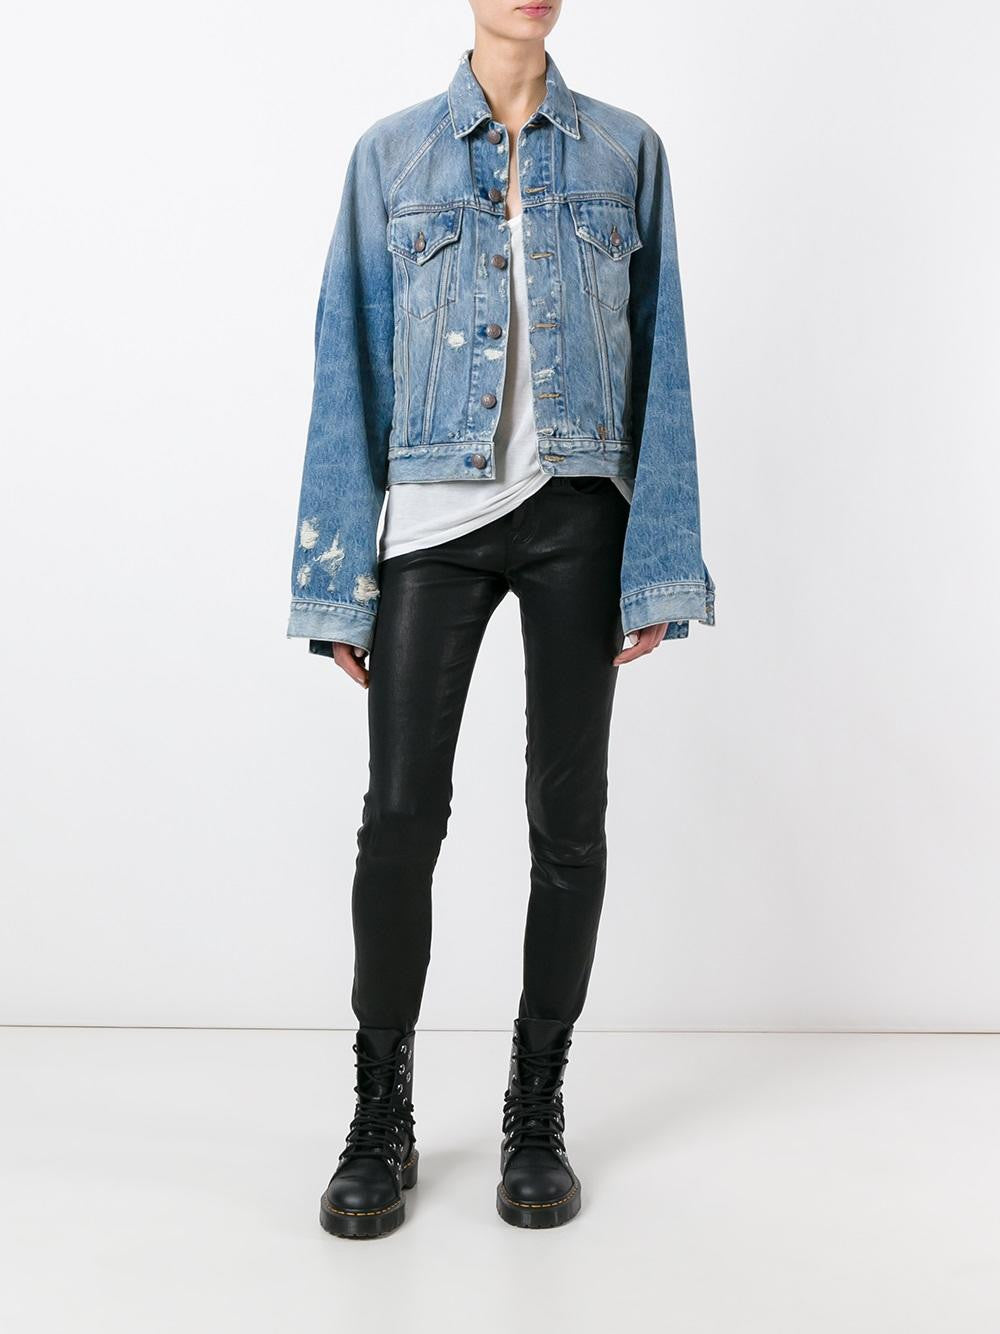 Distressed Denim Jacket | R13W7014-241 RAGLAN TRCKR